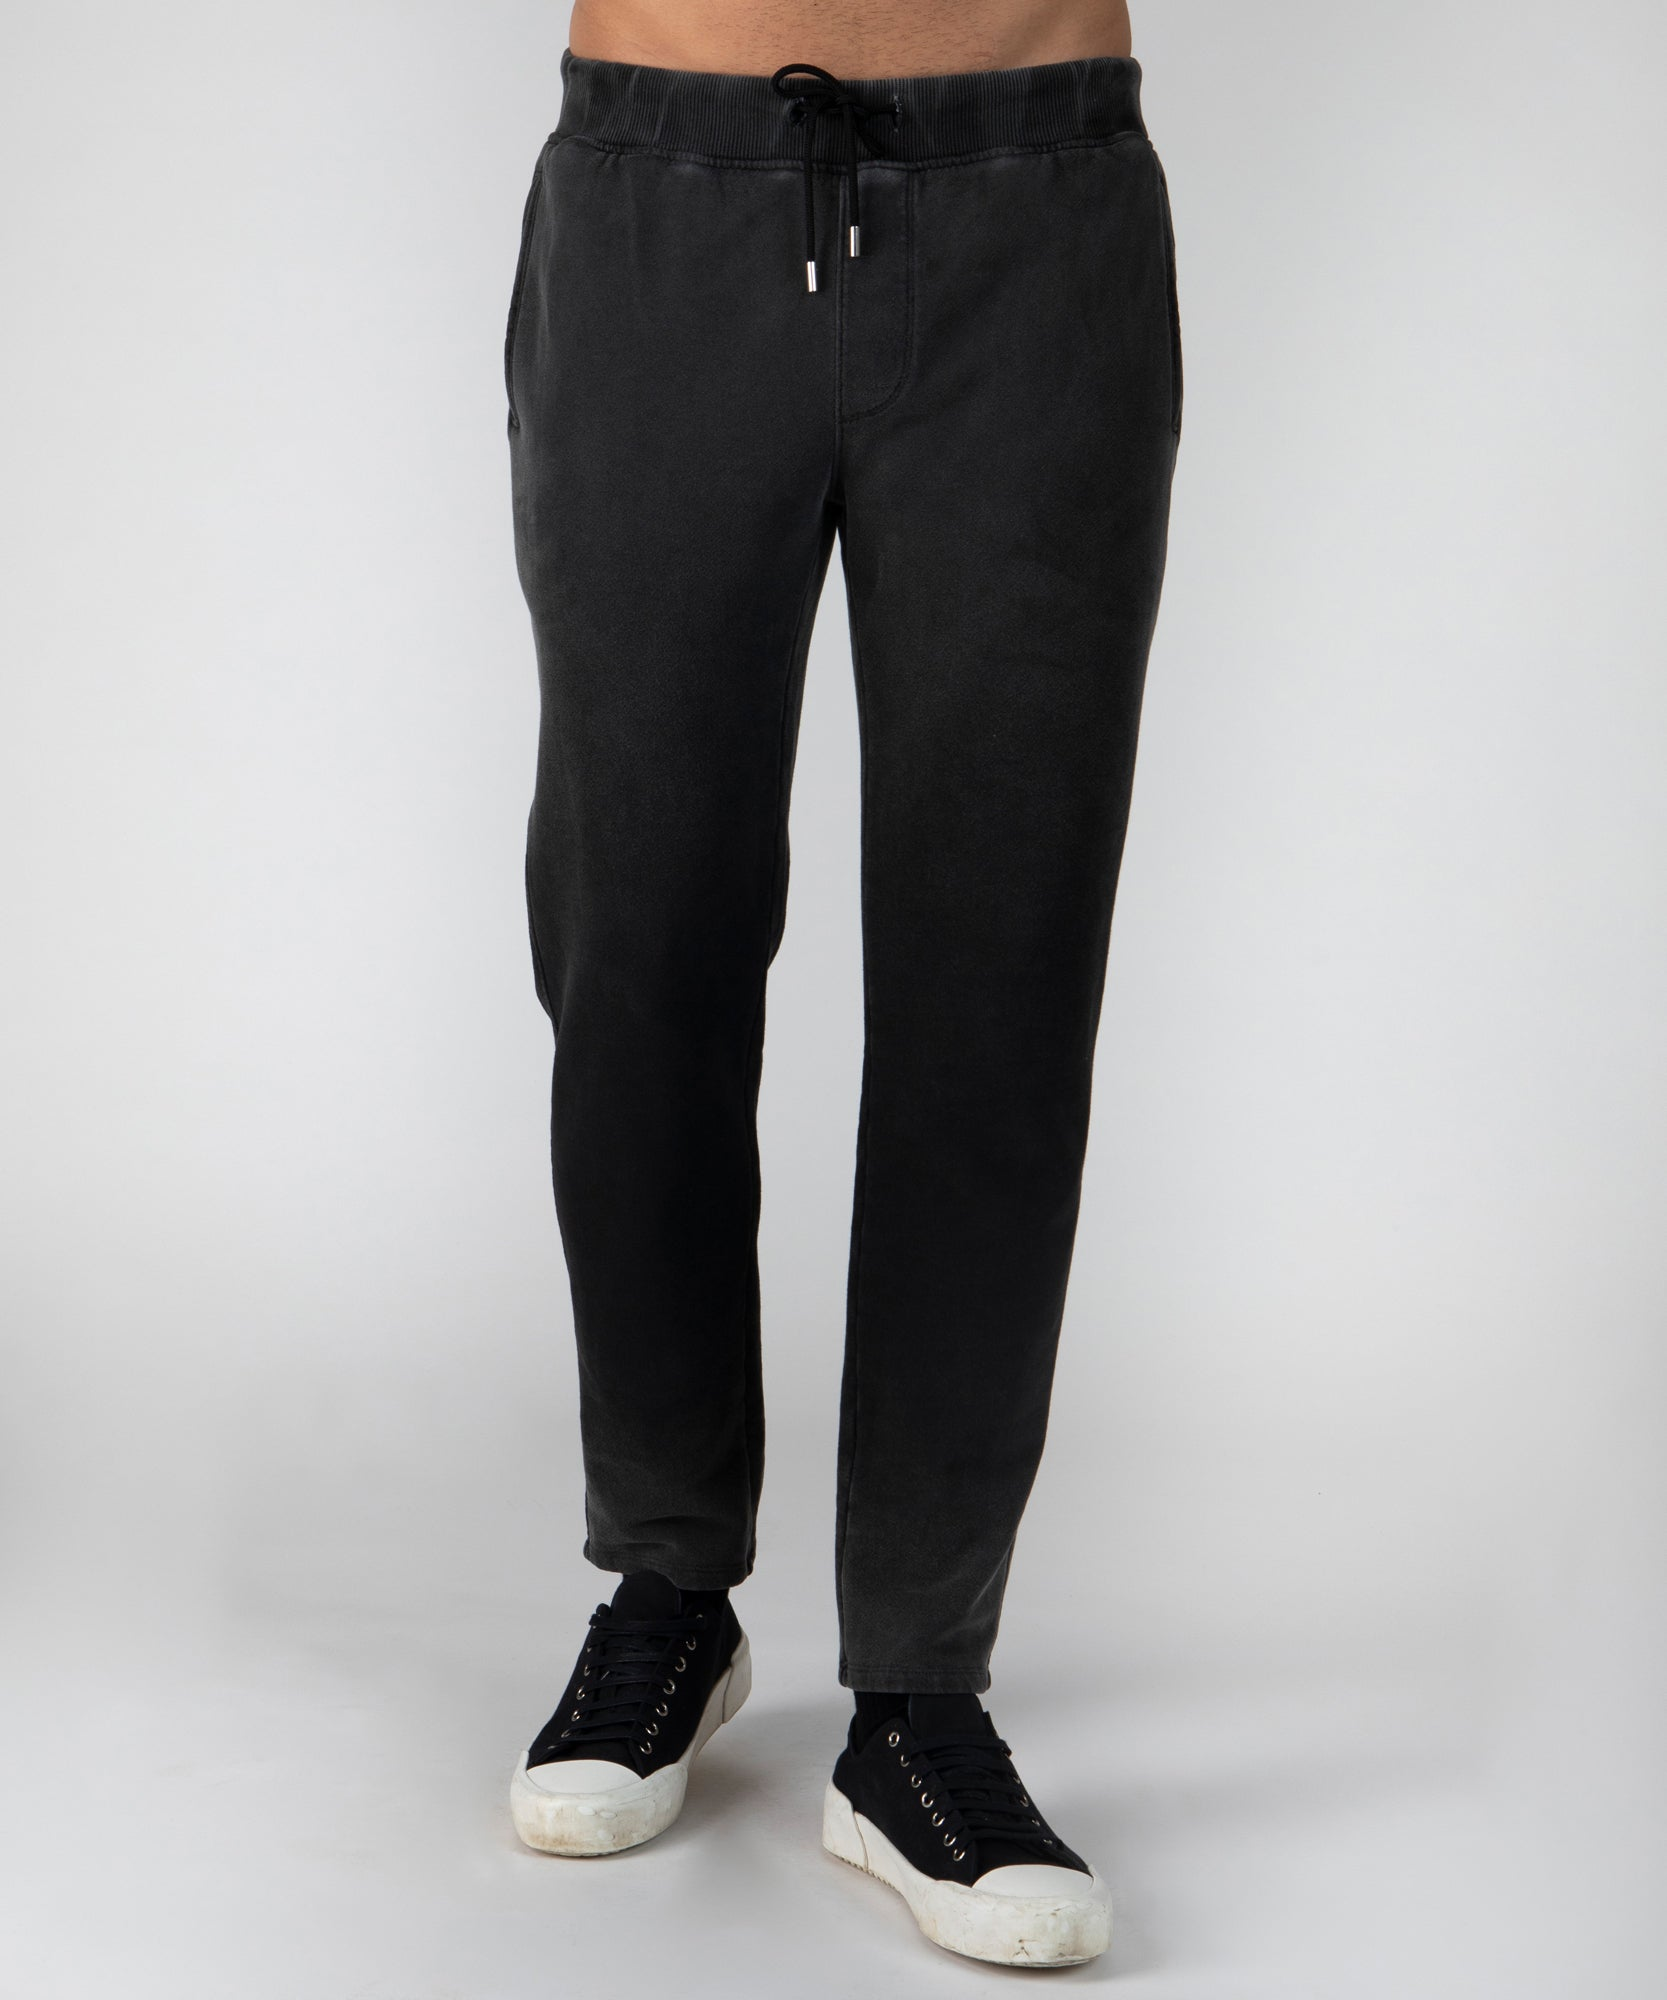 Black Crystal Wash French Terry Pants - Men's Luxe Loungewear by ATM Anthony Thomas Melillo